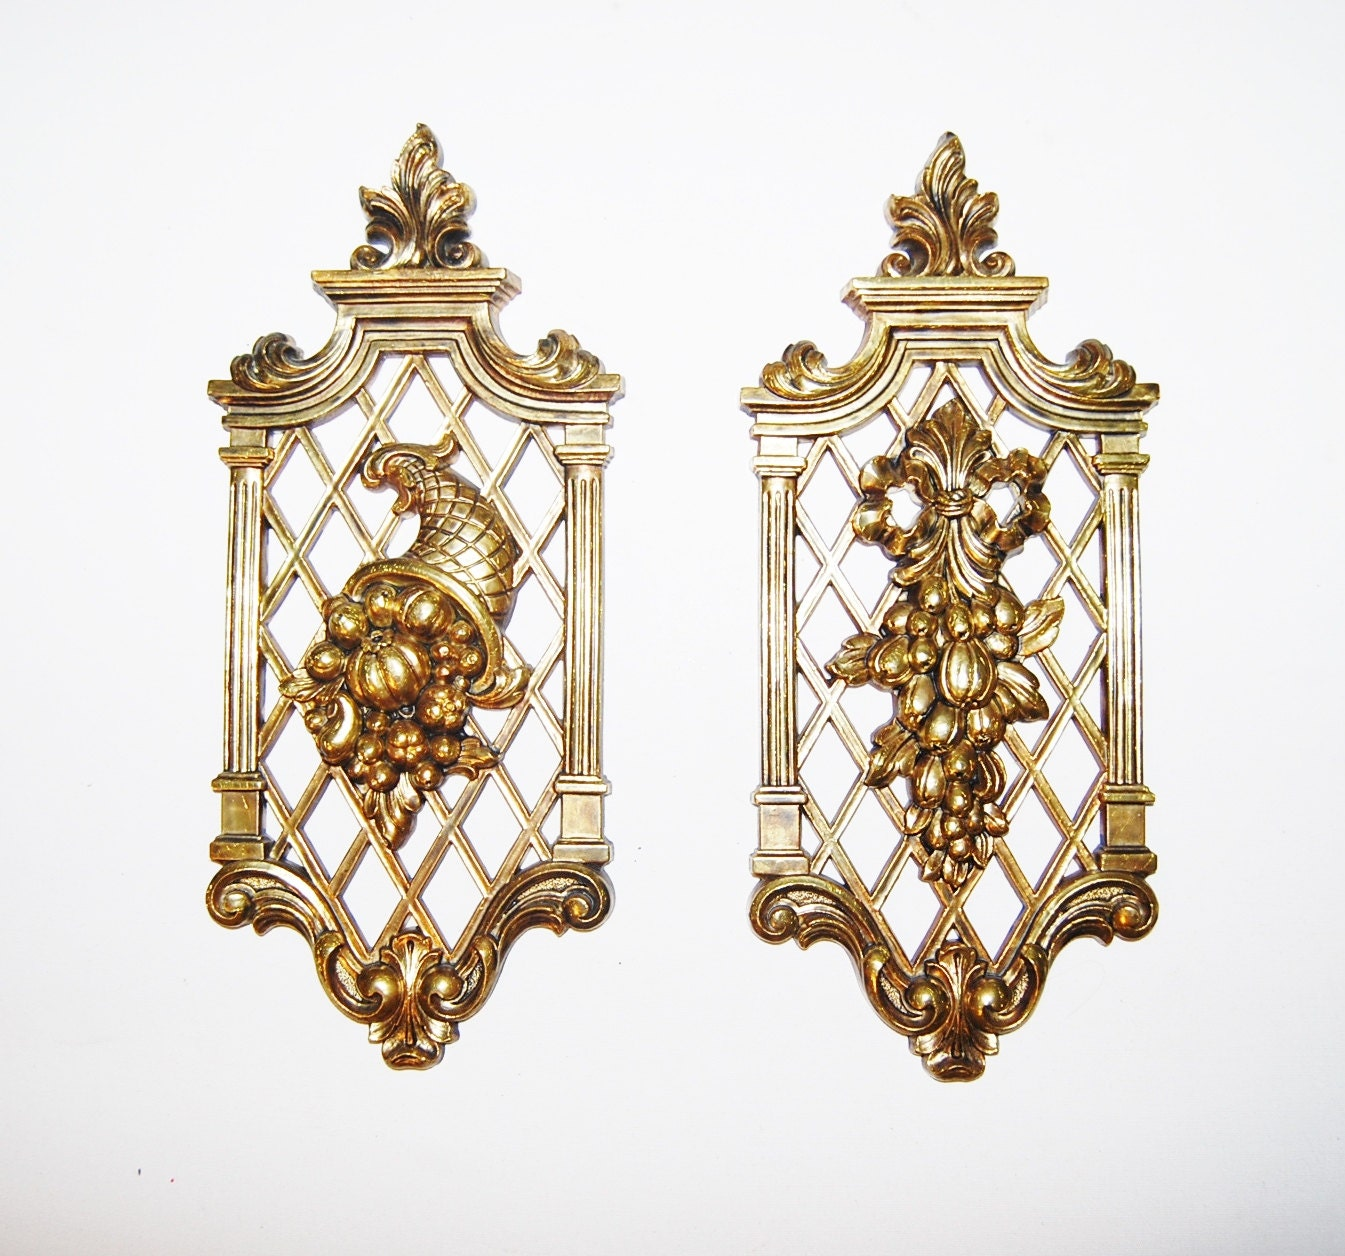 Etsy Gold Wall Decor : Vintage hollywood regency gold wall decor by